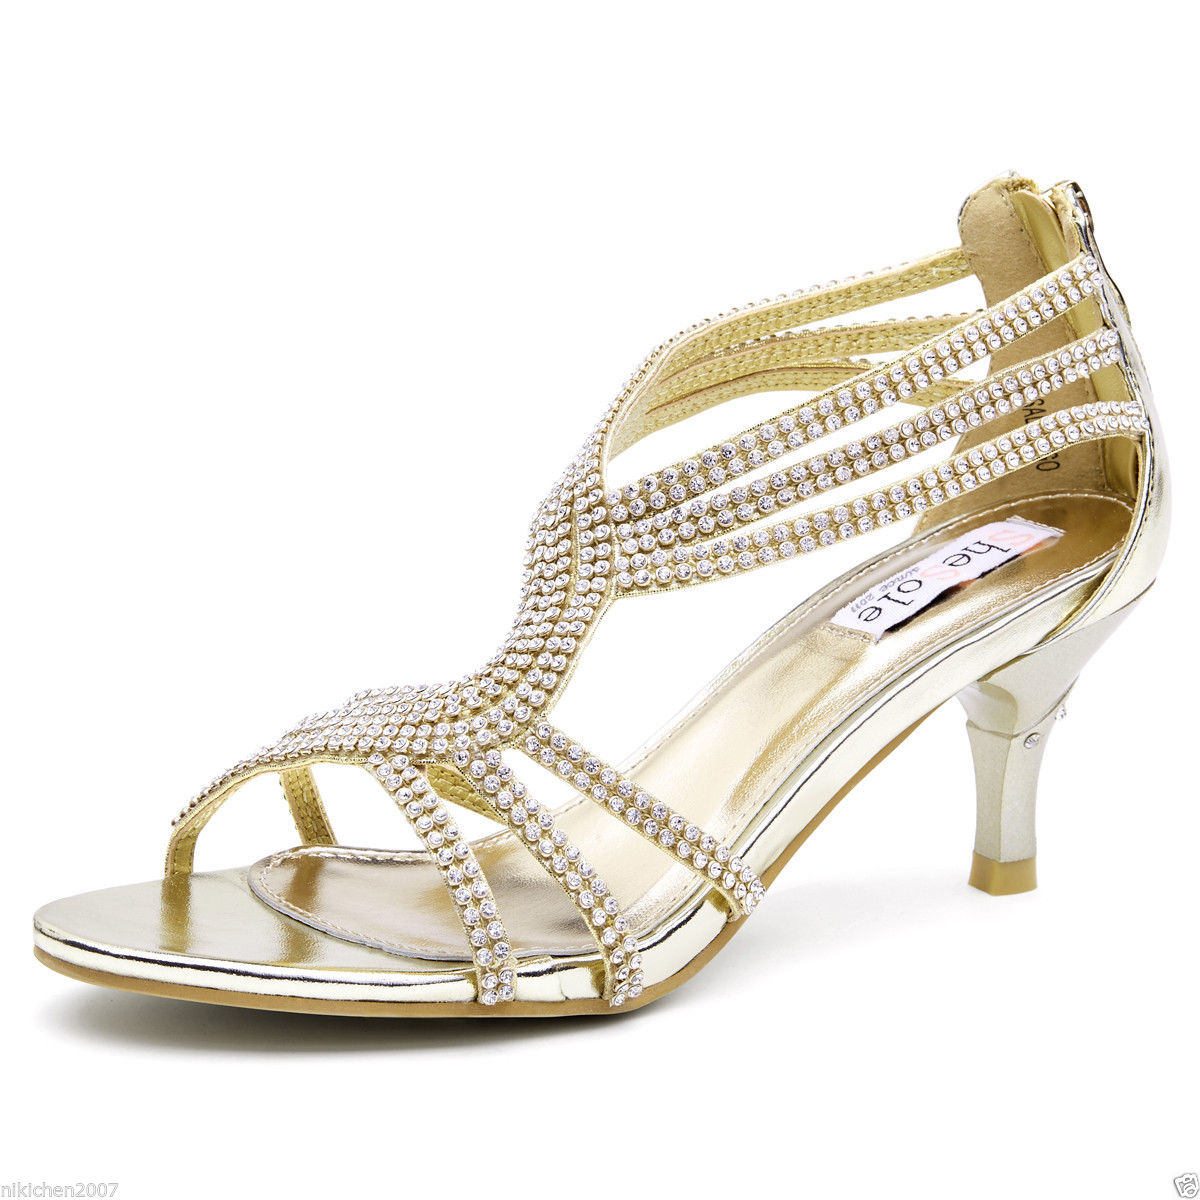 Details about SheSole Womens Low Heel Strappy Sandals Rhinestone Wedding Shoes Silver Gold